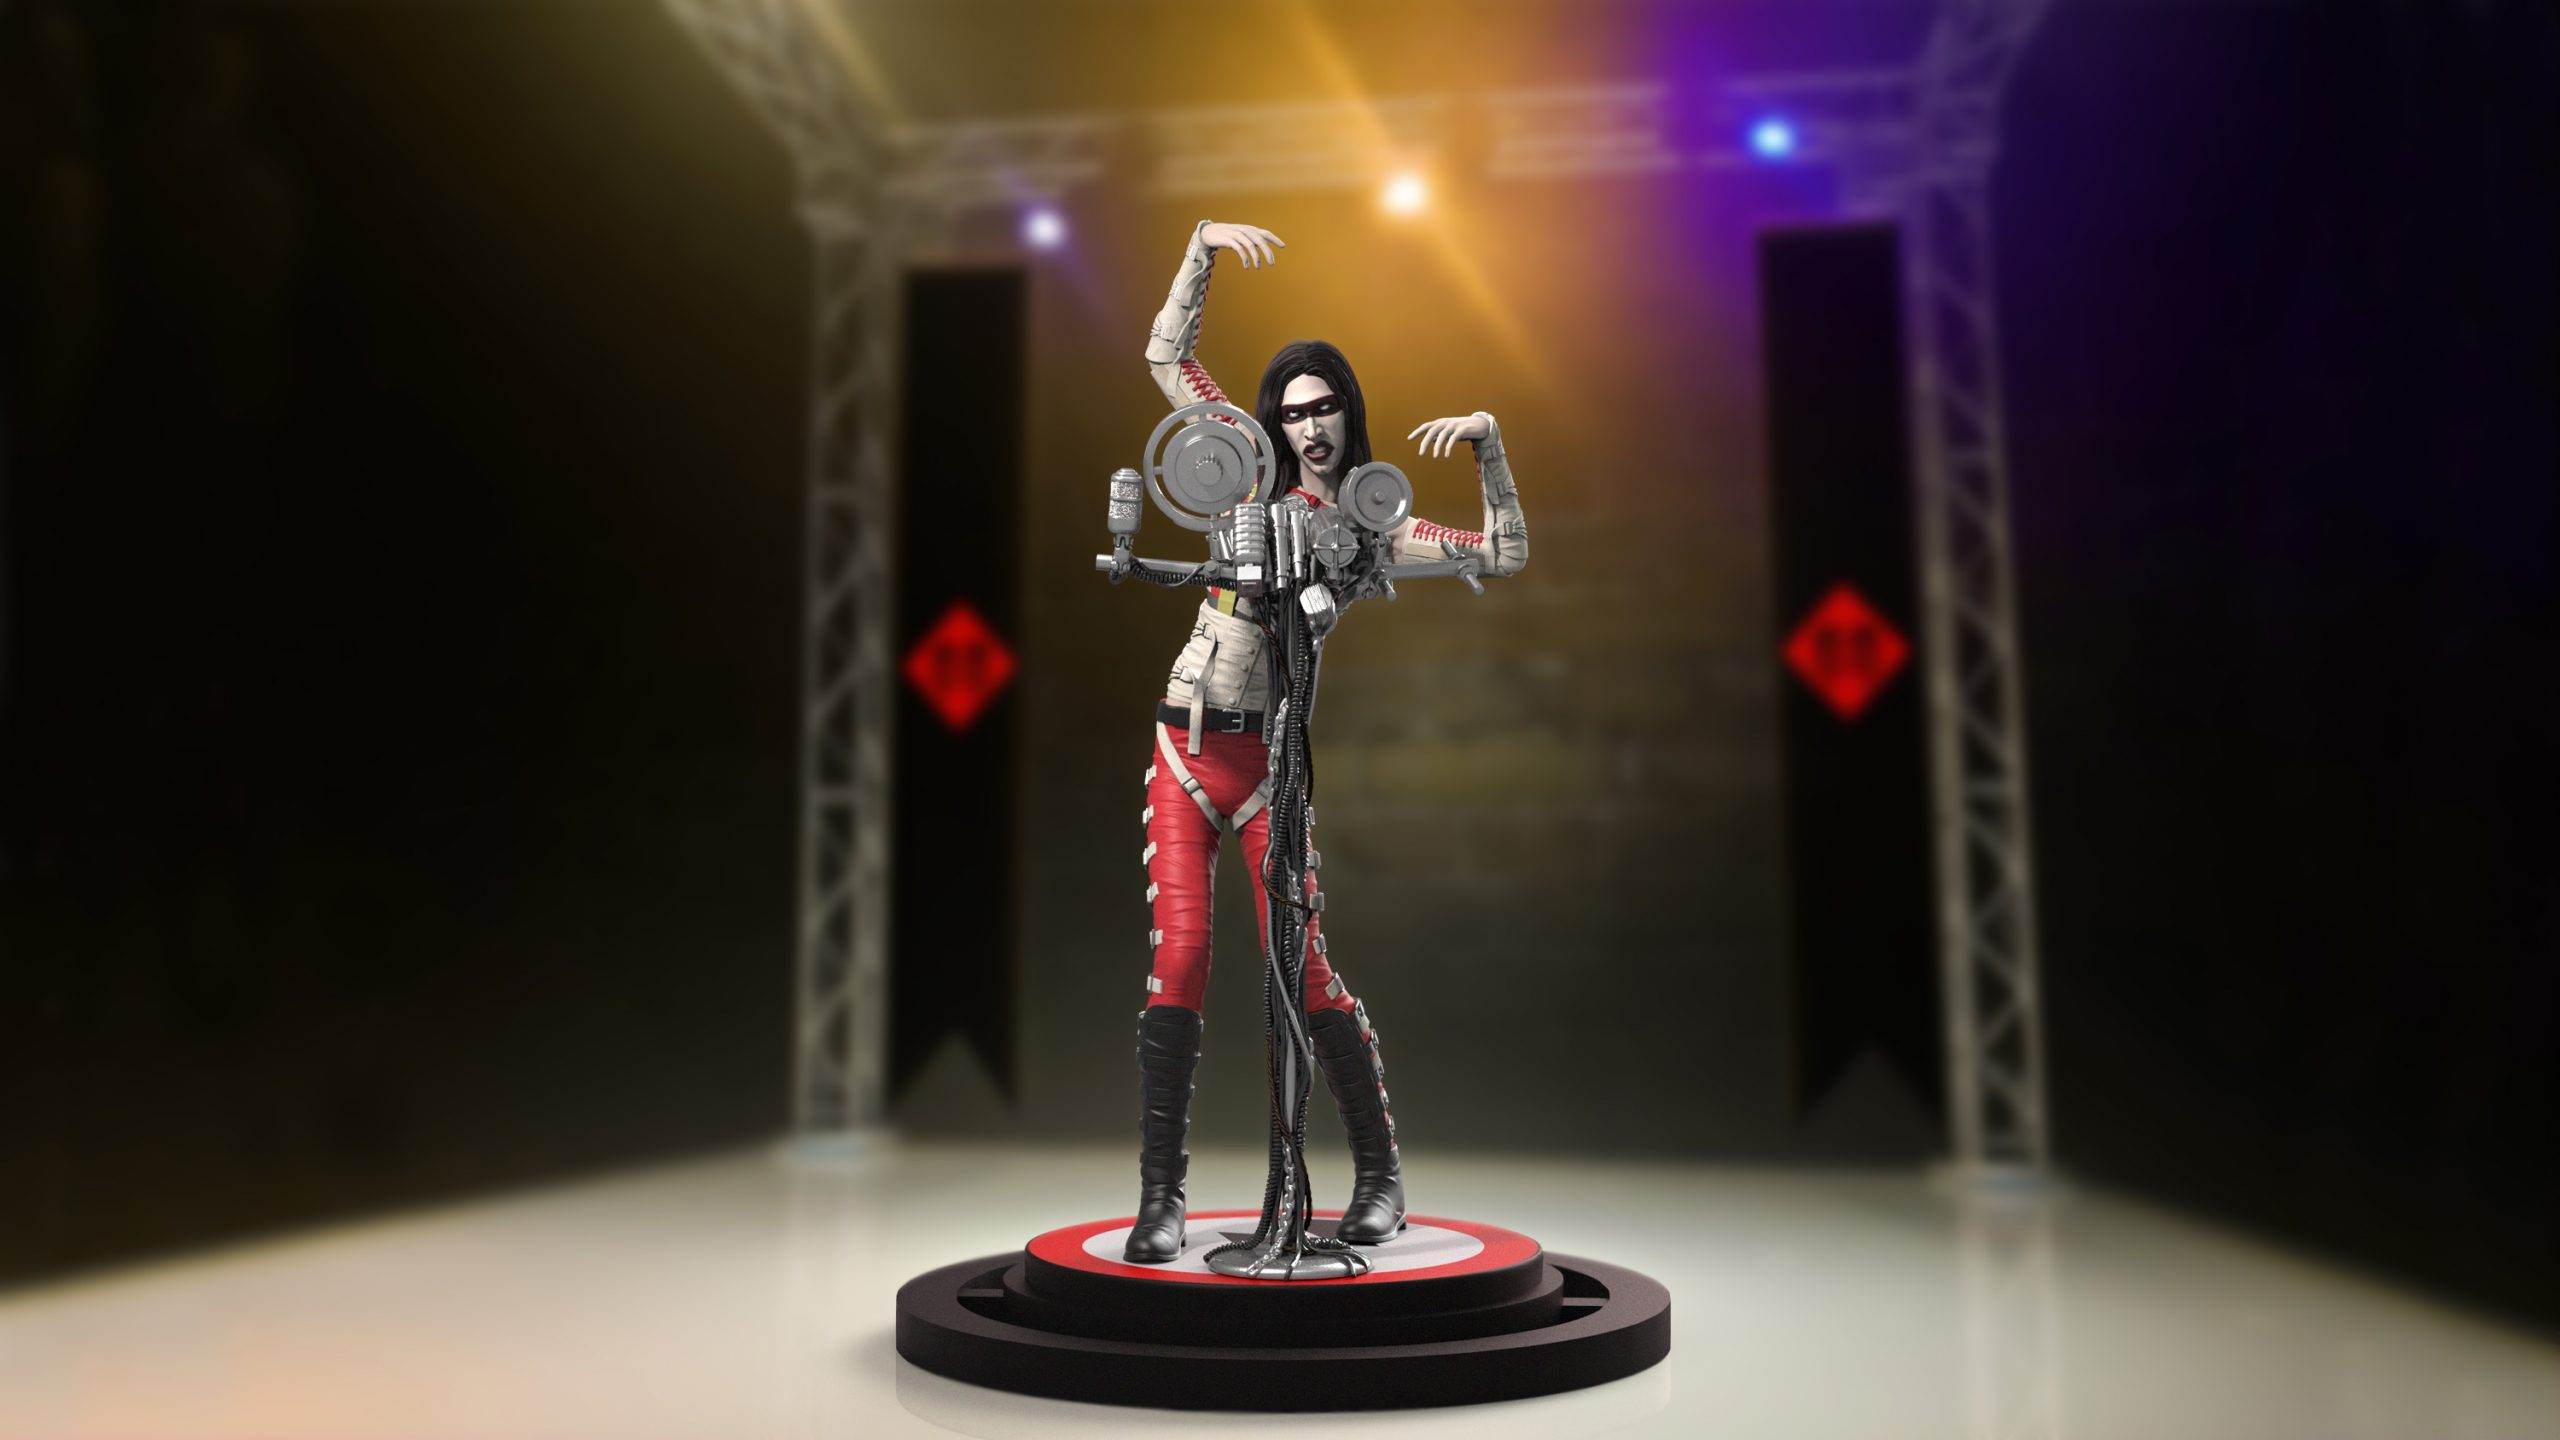 The Marilyn Manson Rock Iconz Limited Edition statue from KnuckleBonz.